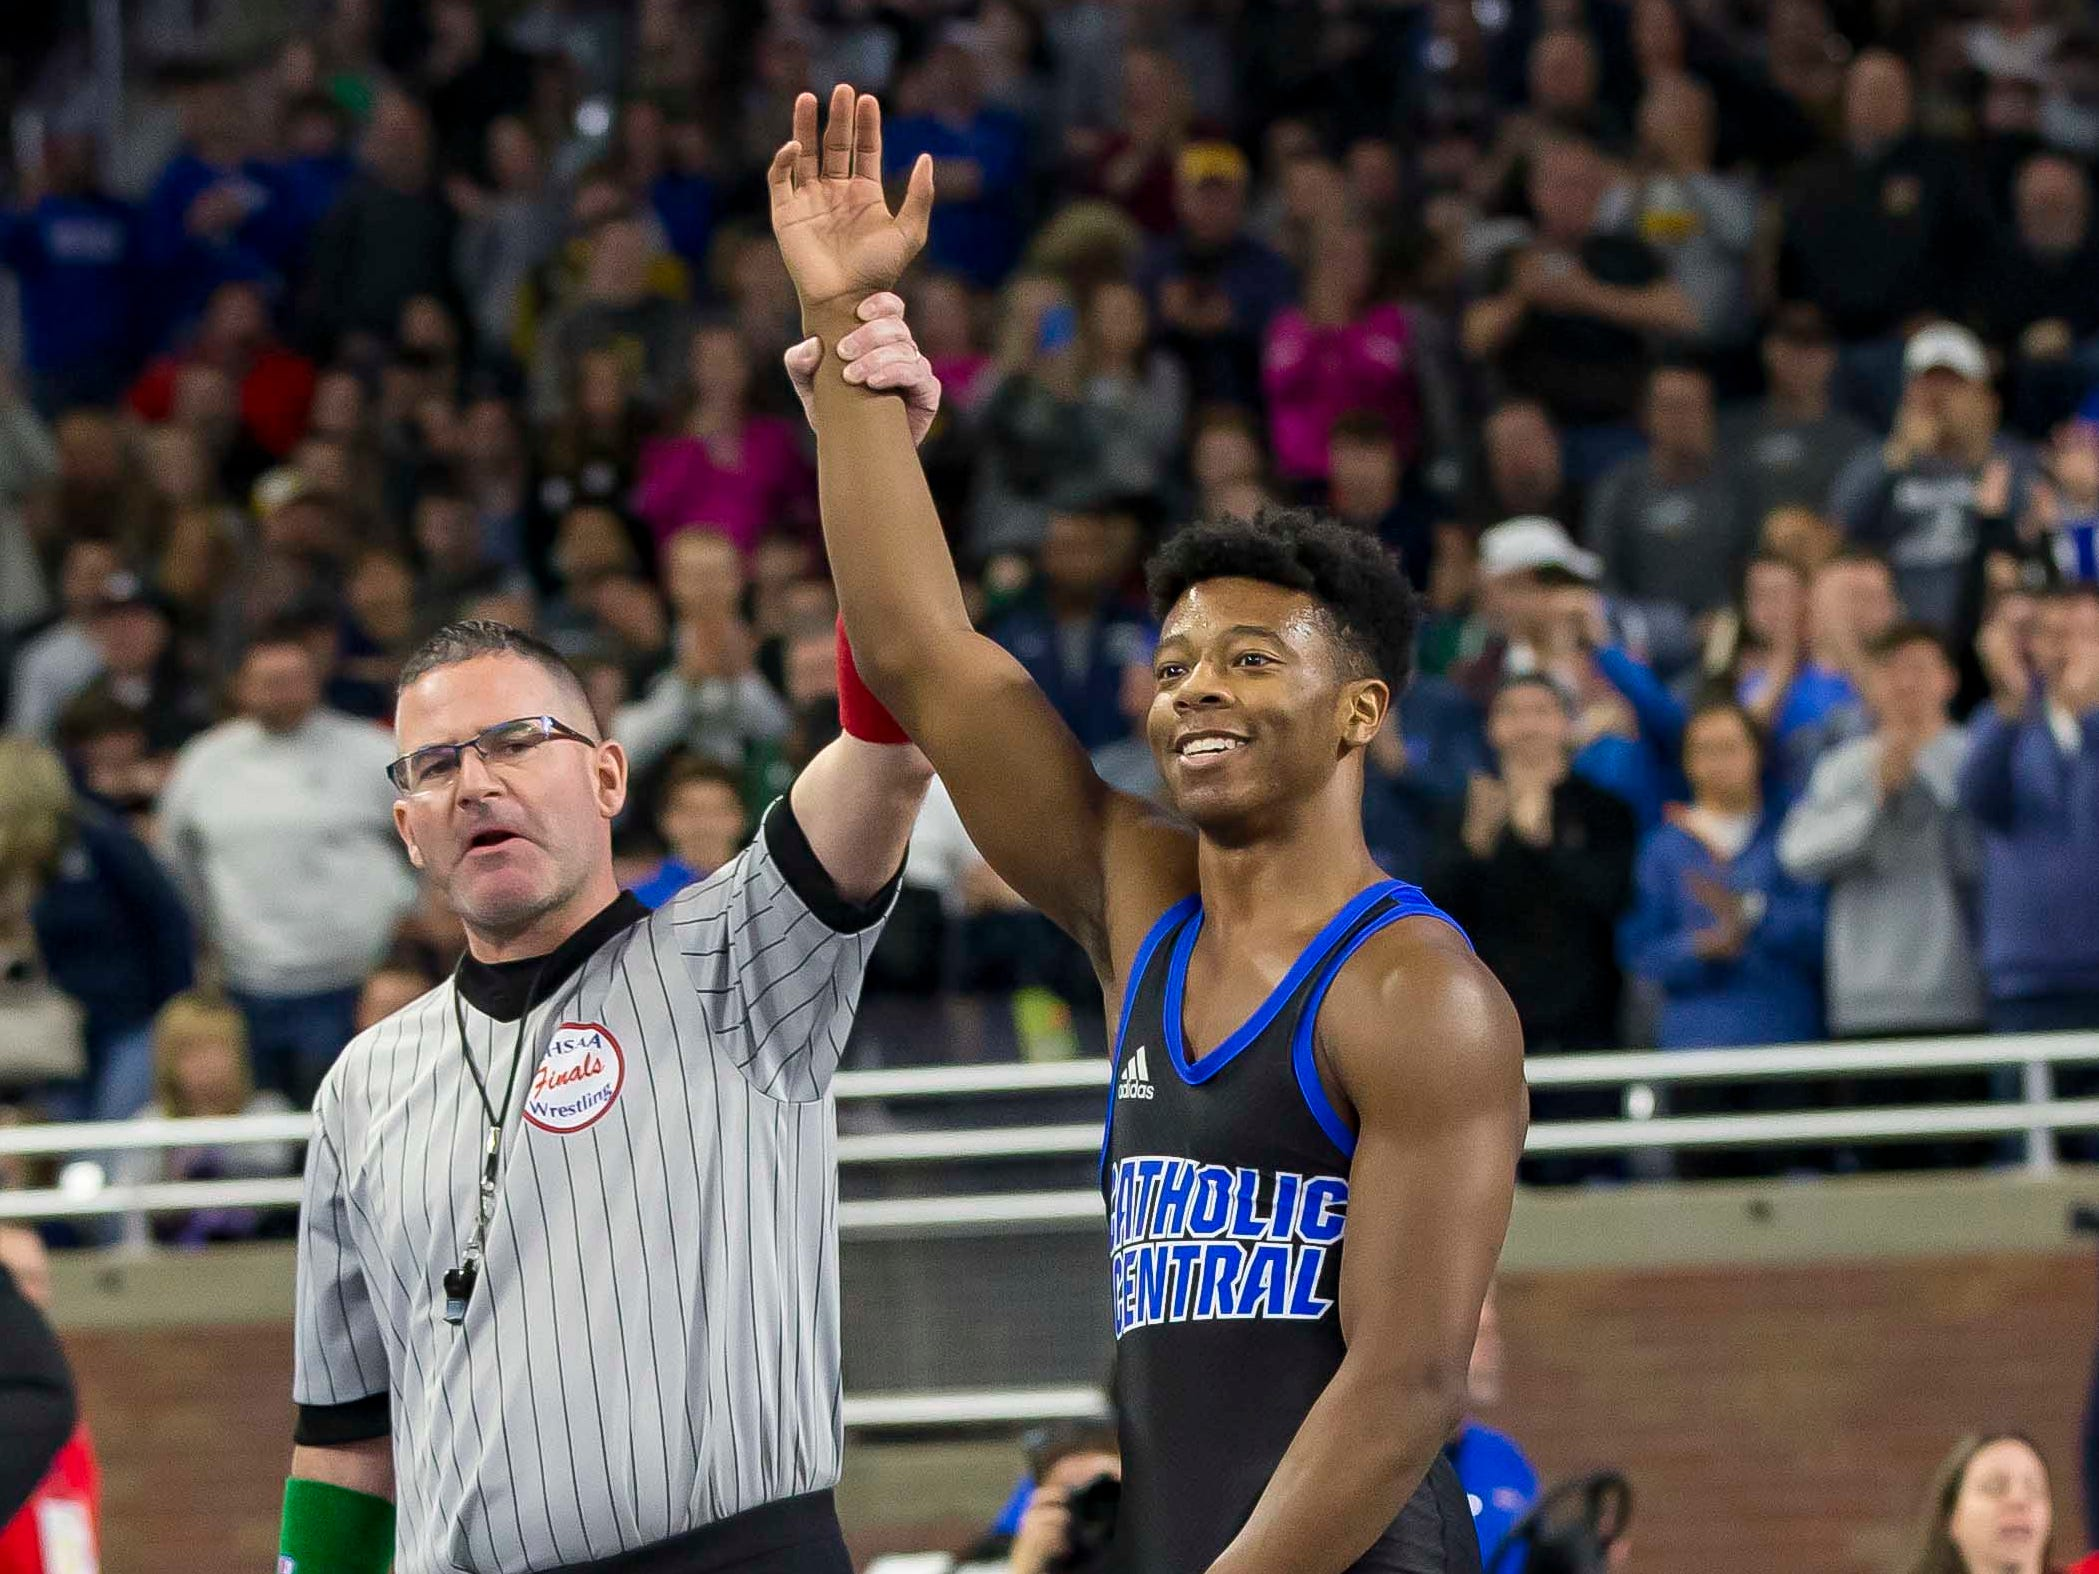 Kevon Davenport of Detroit Catholic Central has his arm raised in victory after defeating Vic Schoenherr of Bay City Western during their 145-pound Division 1 championship match during the MHSAA Individual Wrestling Finals-Day 2 at Ford Field on March 2, 2019 in Detroit, Michigan. This was Davenports 4th straight state championship.